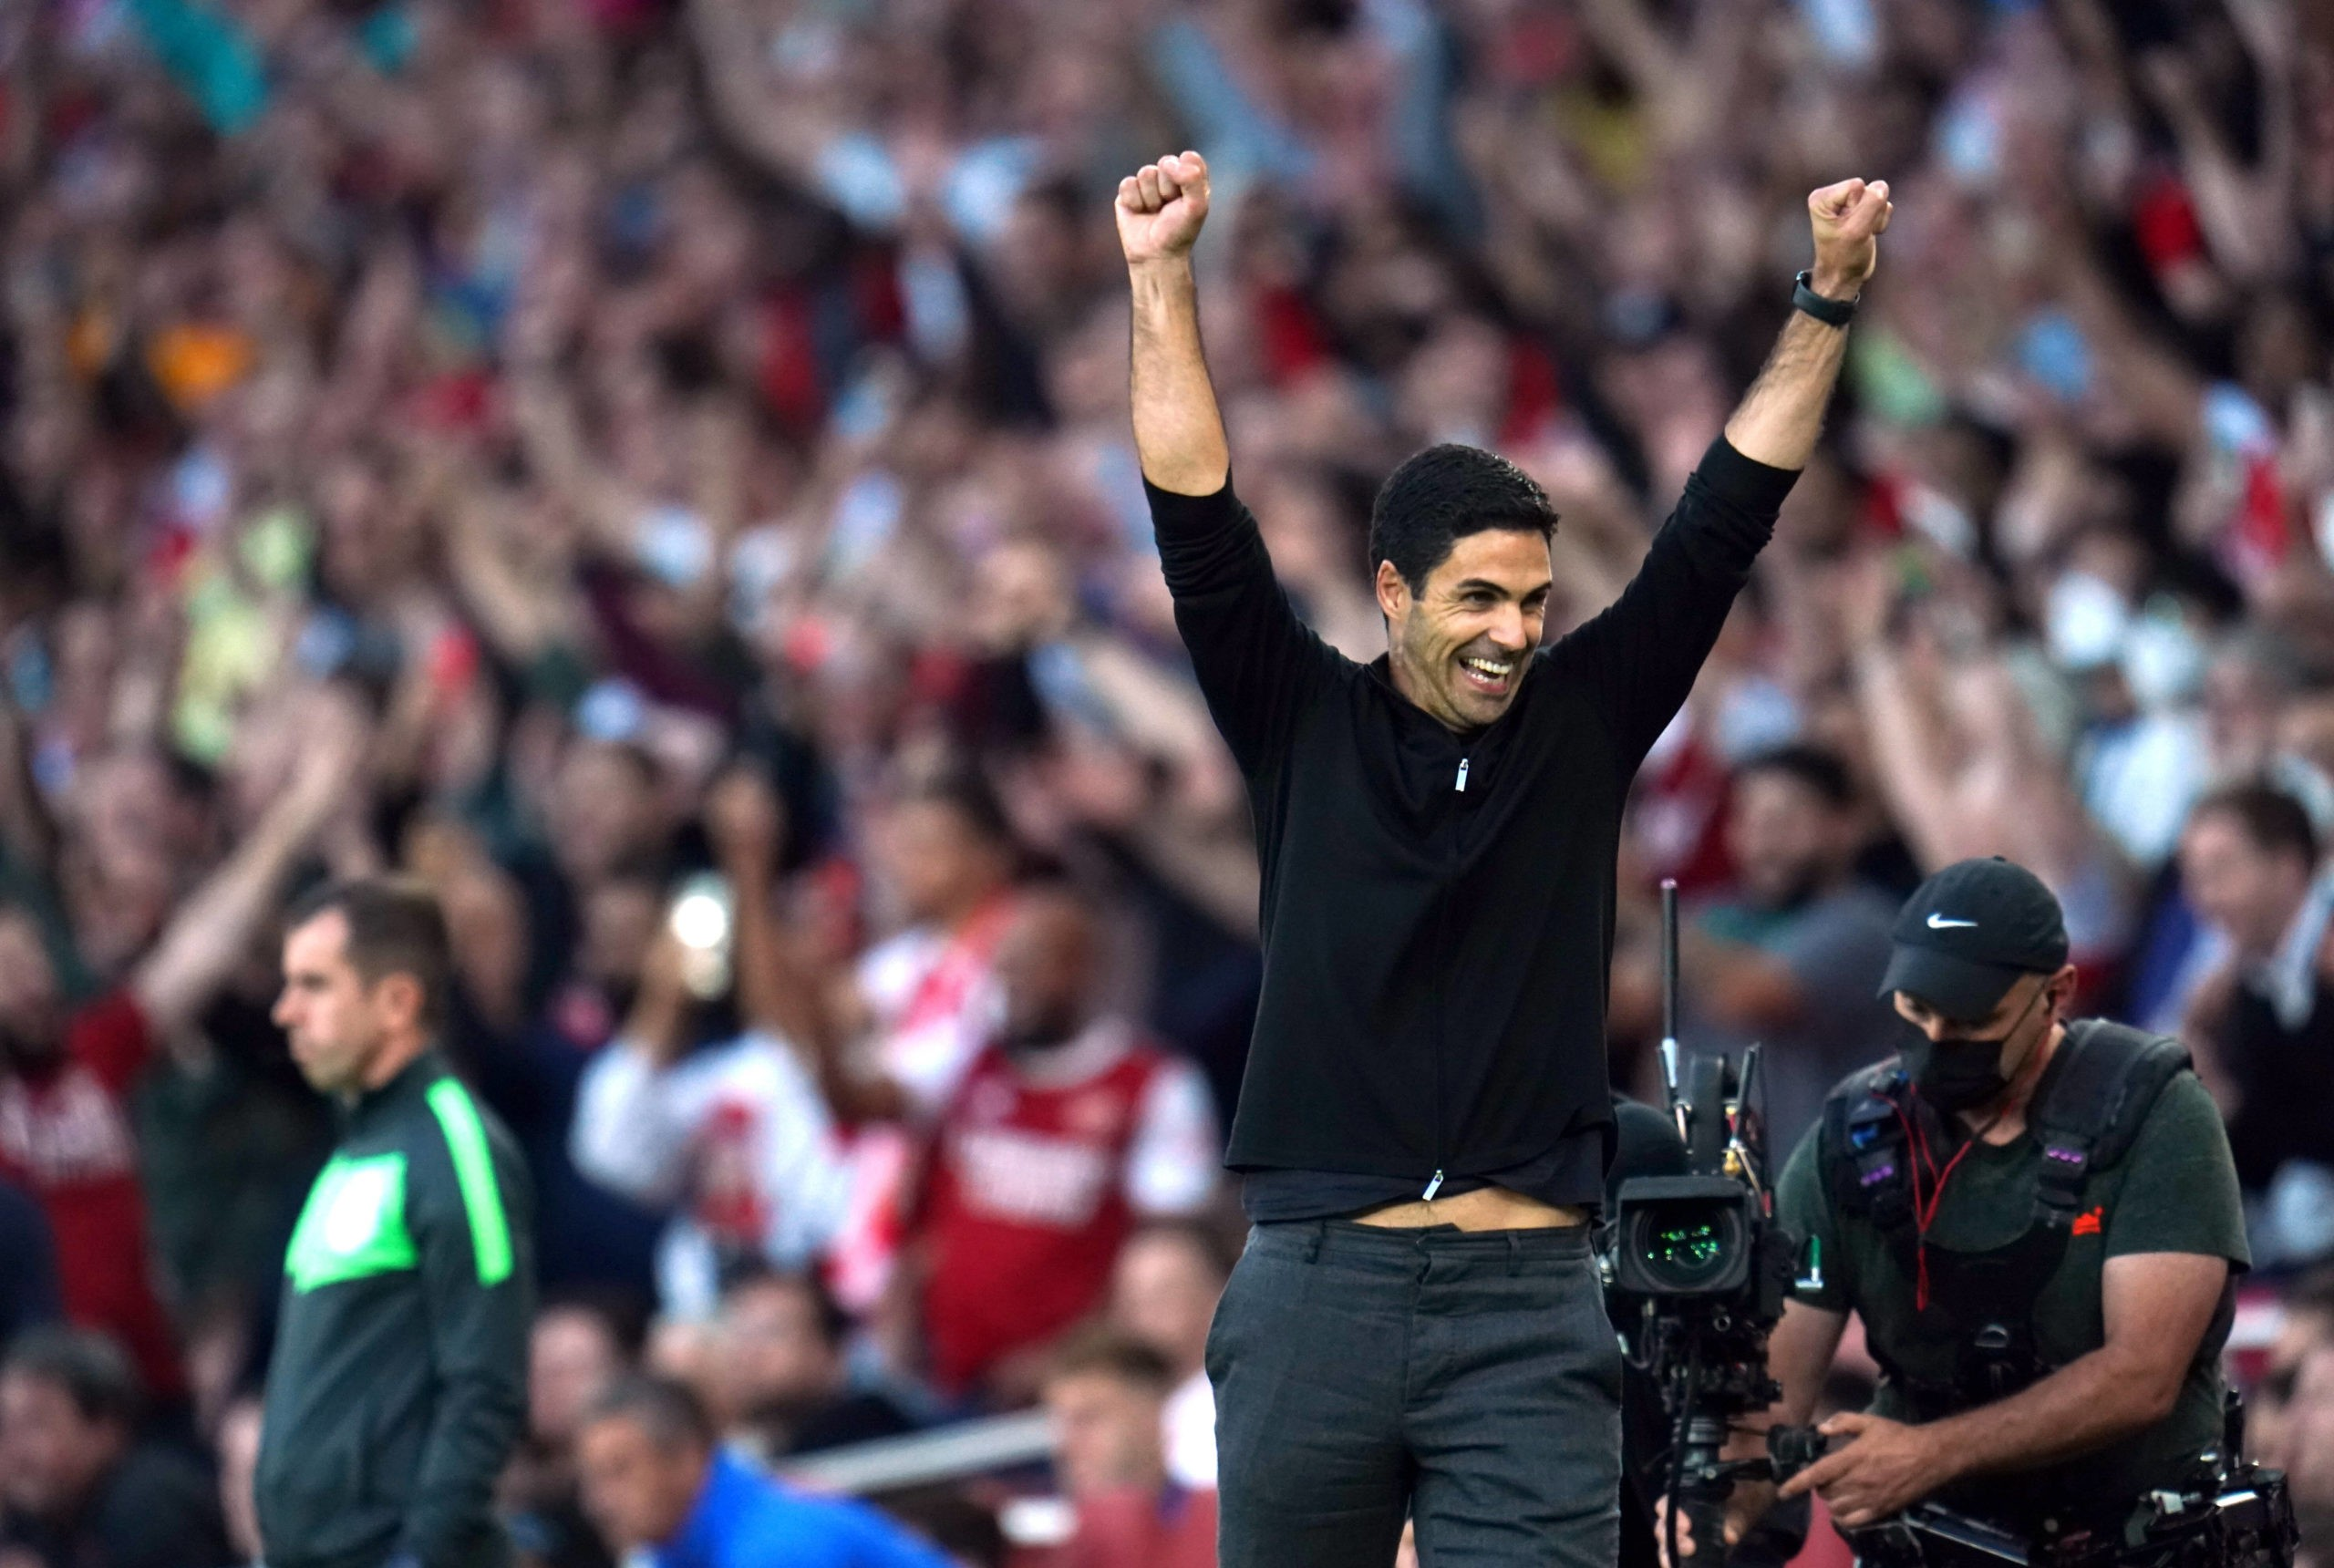 Arsenal manager Mikel Arteta celebrates after the Premier League win over Tottenham Hotspur at the Emirates Stadium, London. Picture date: Sunday, September 26, 2021. Copyright: Nick Potts